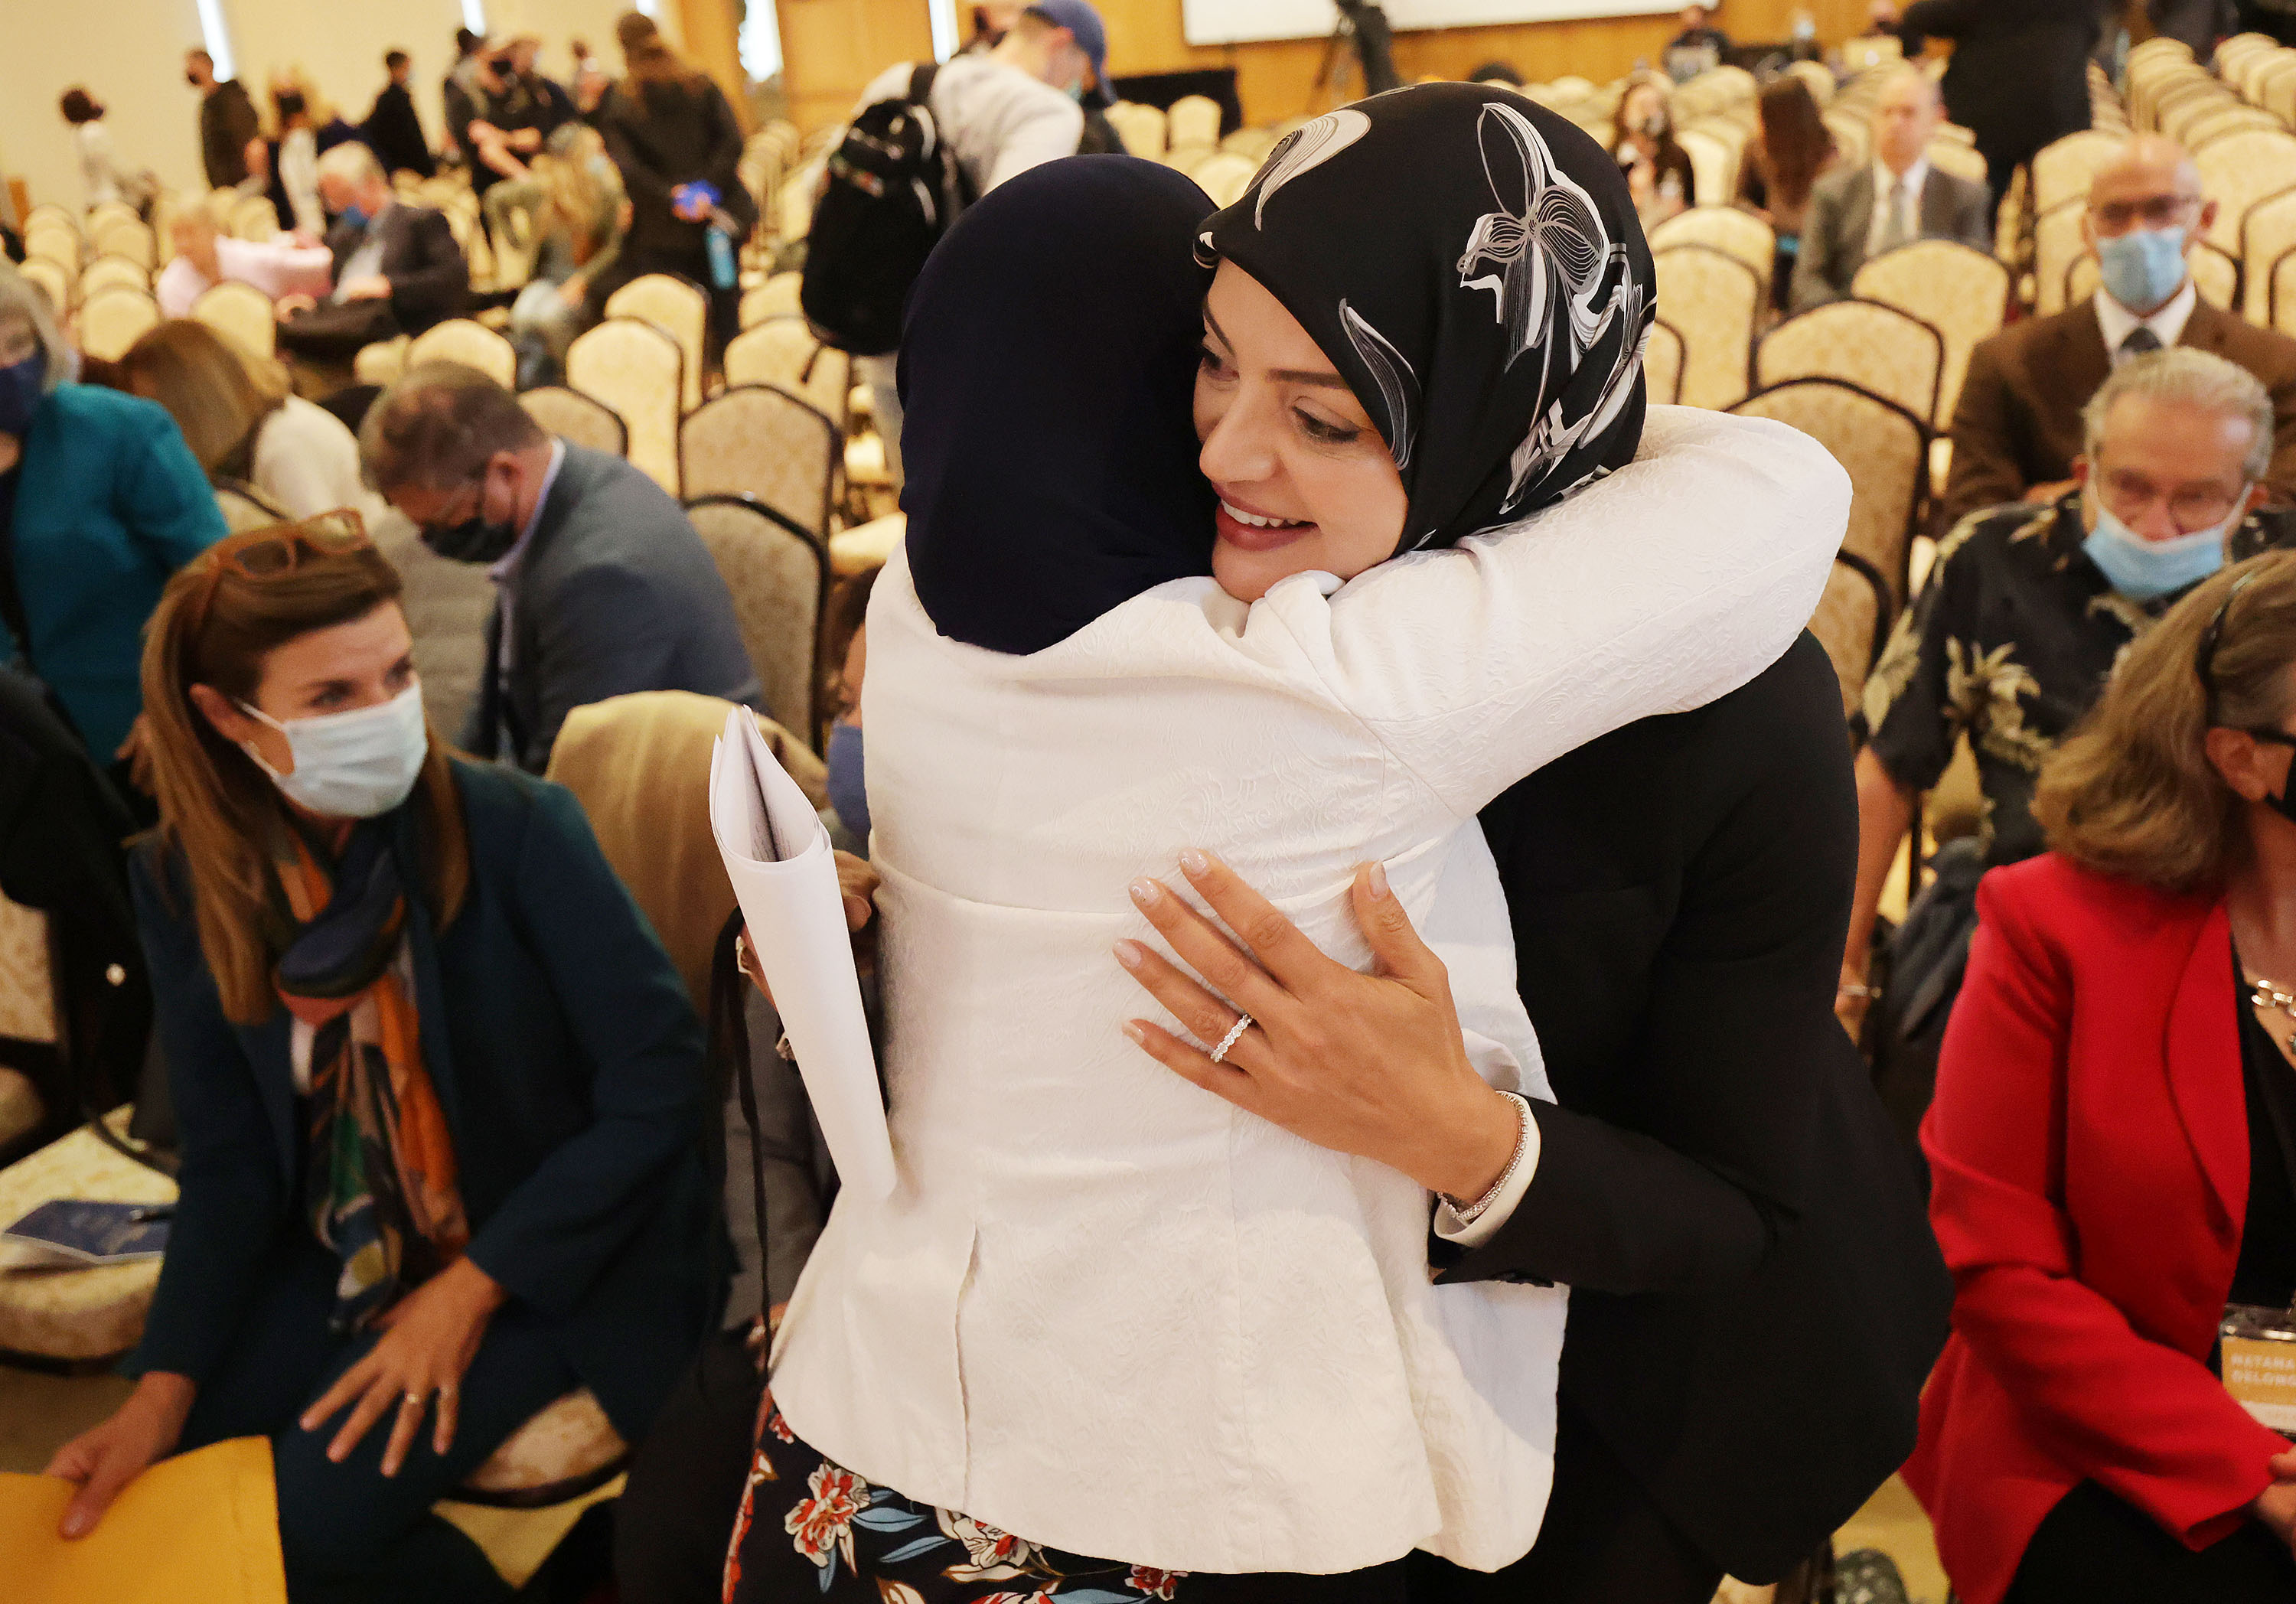 Dalia Fahmy gets a hug after speaking at the Islamic World Today conference at Brigham Young University in Provo on Tuesday, Oct. 19, 2021.